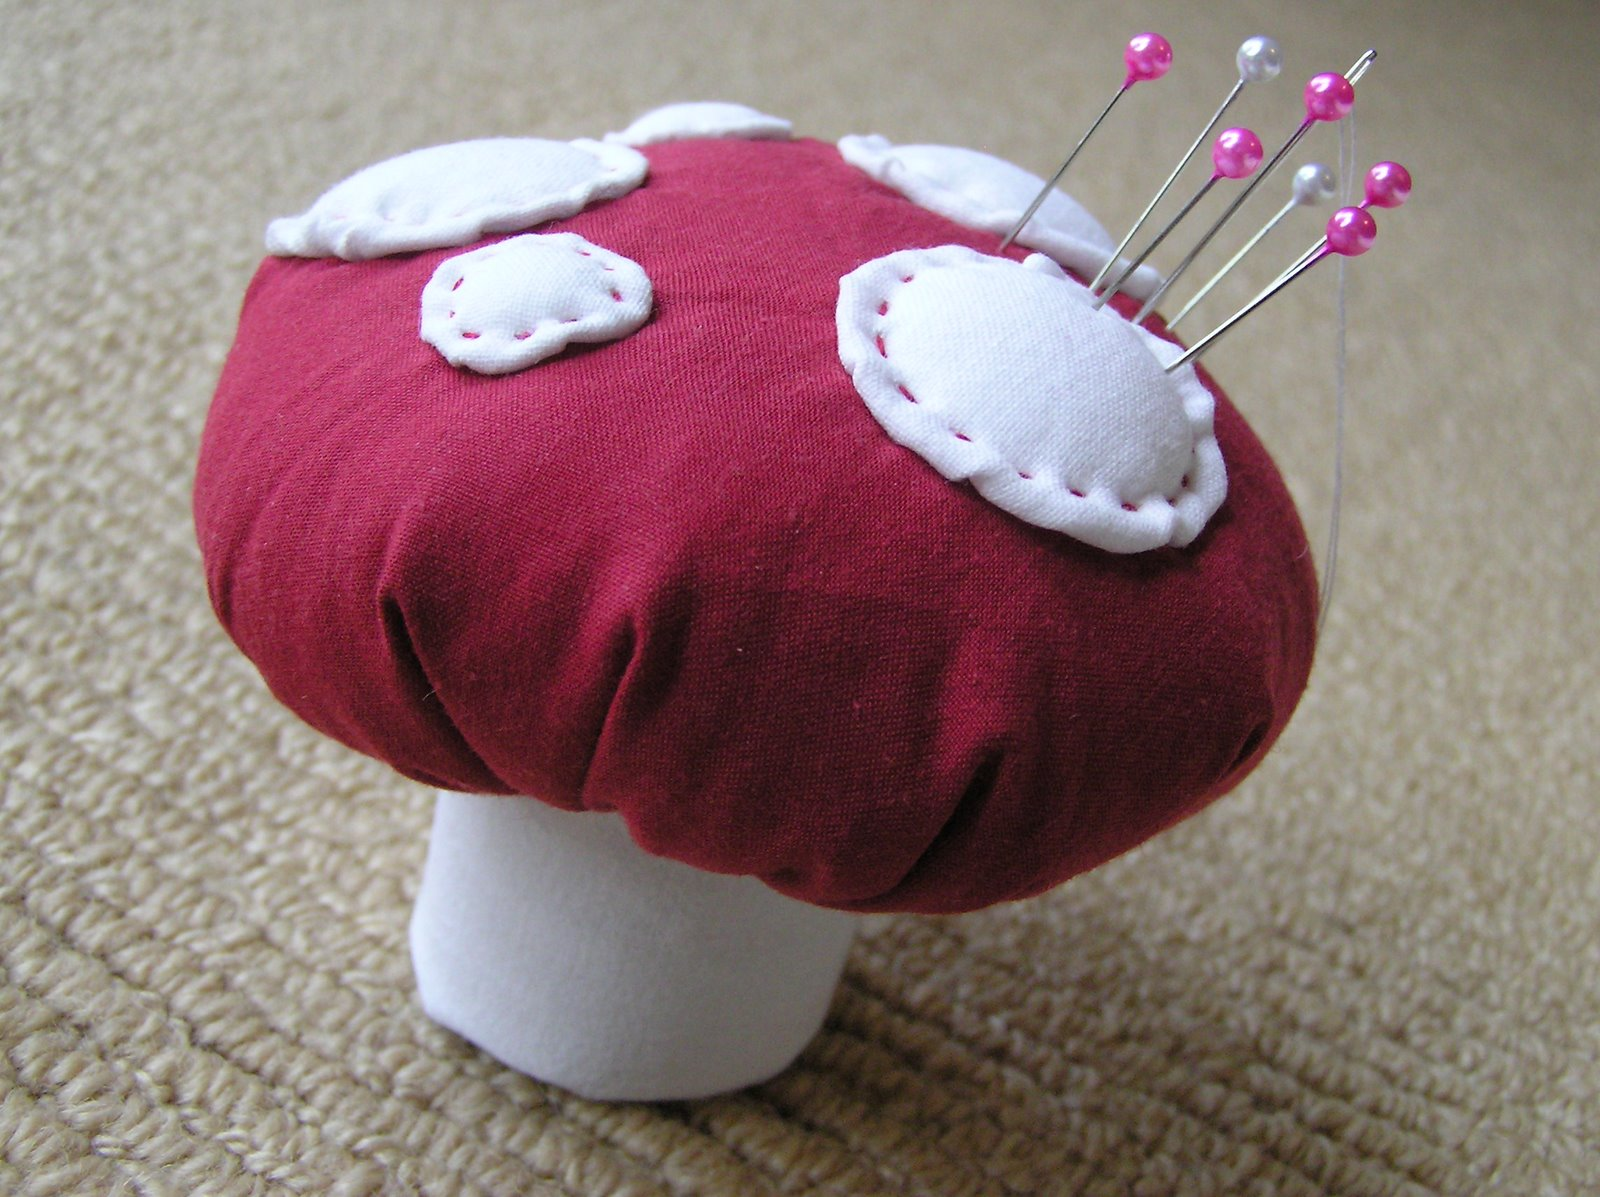 How to make a toadstool pincushion...